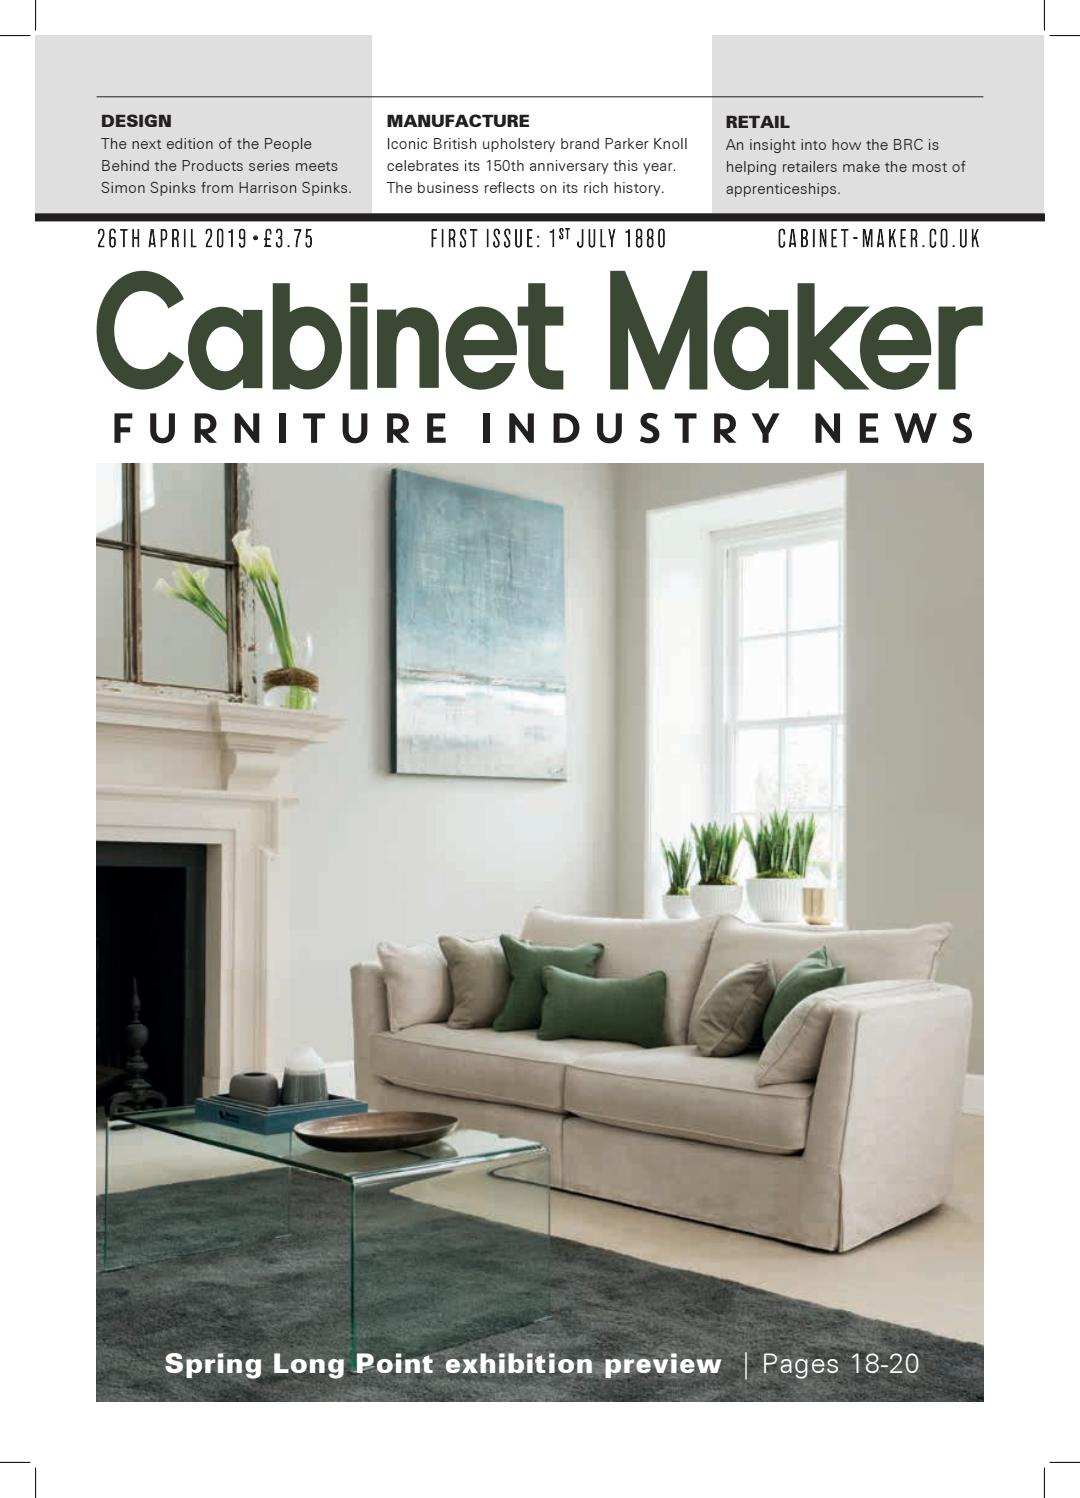 Cabinet Maker 26th April 2019